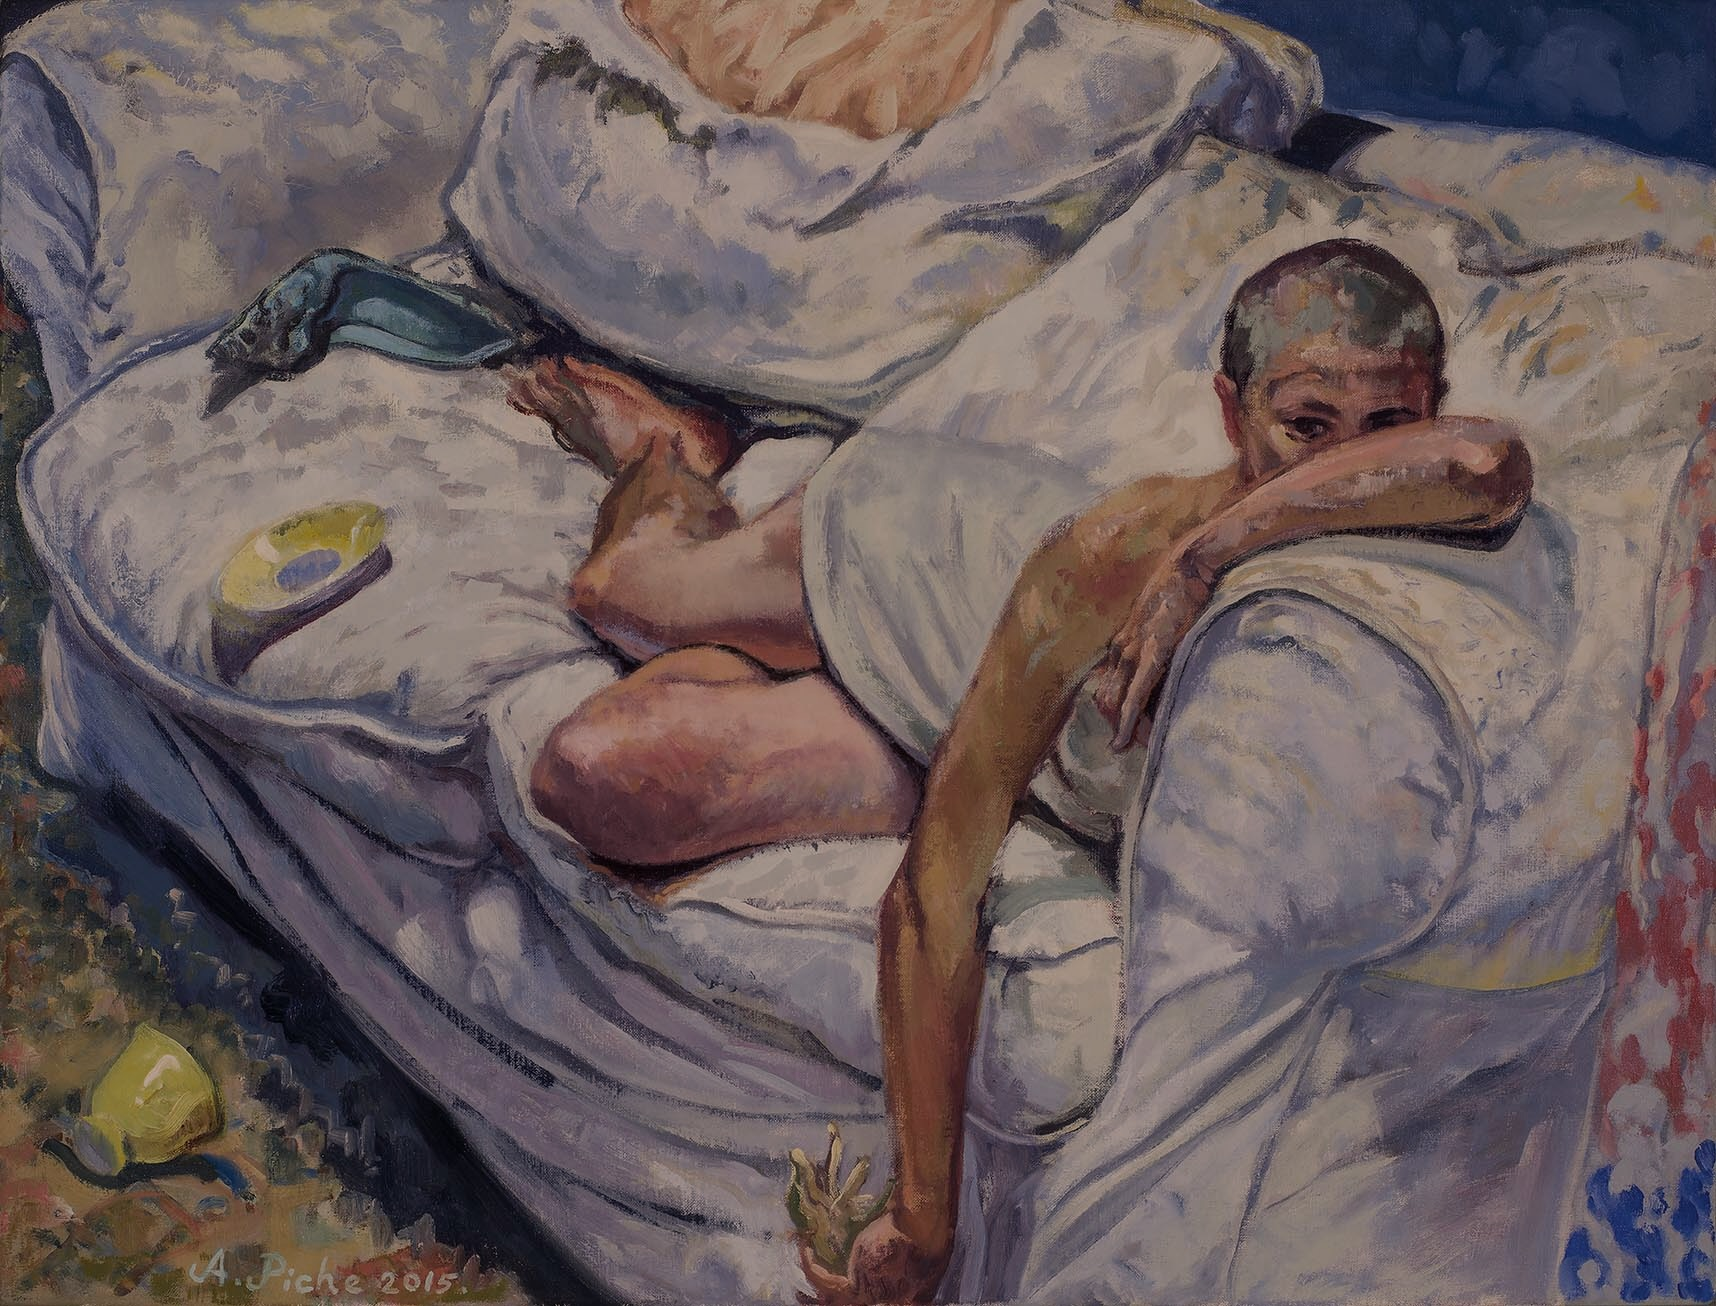 Skin on Brush (Oil on Linen), 2015